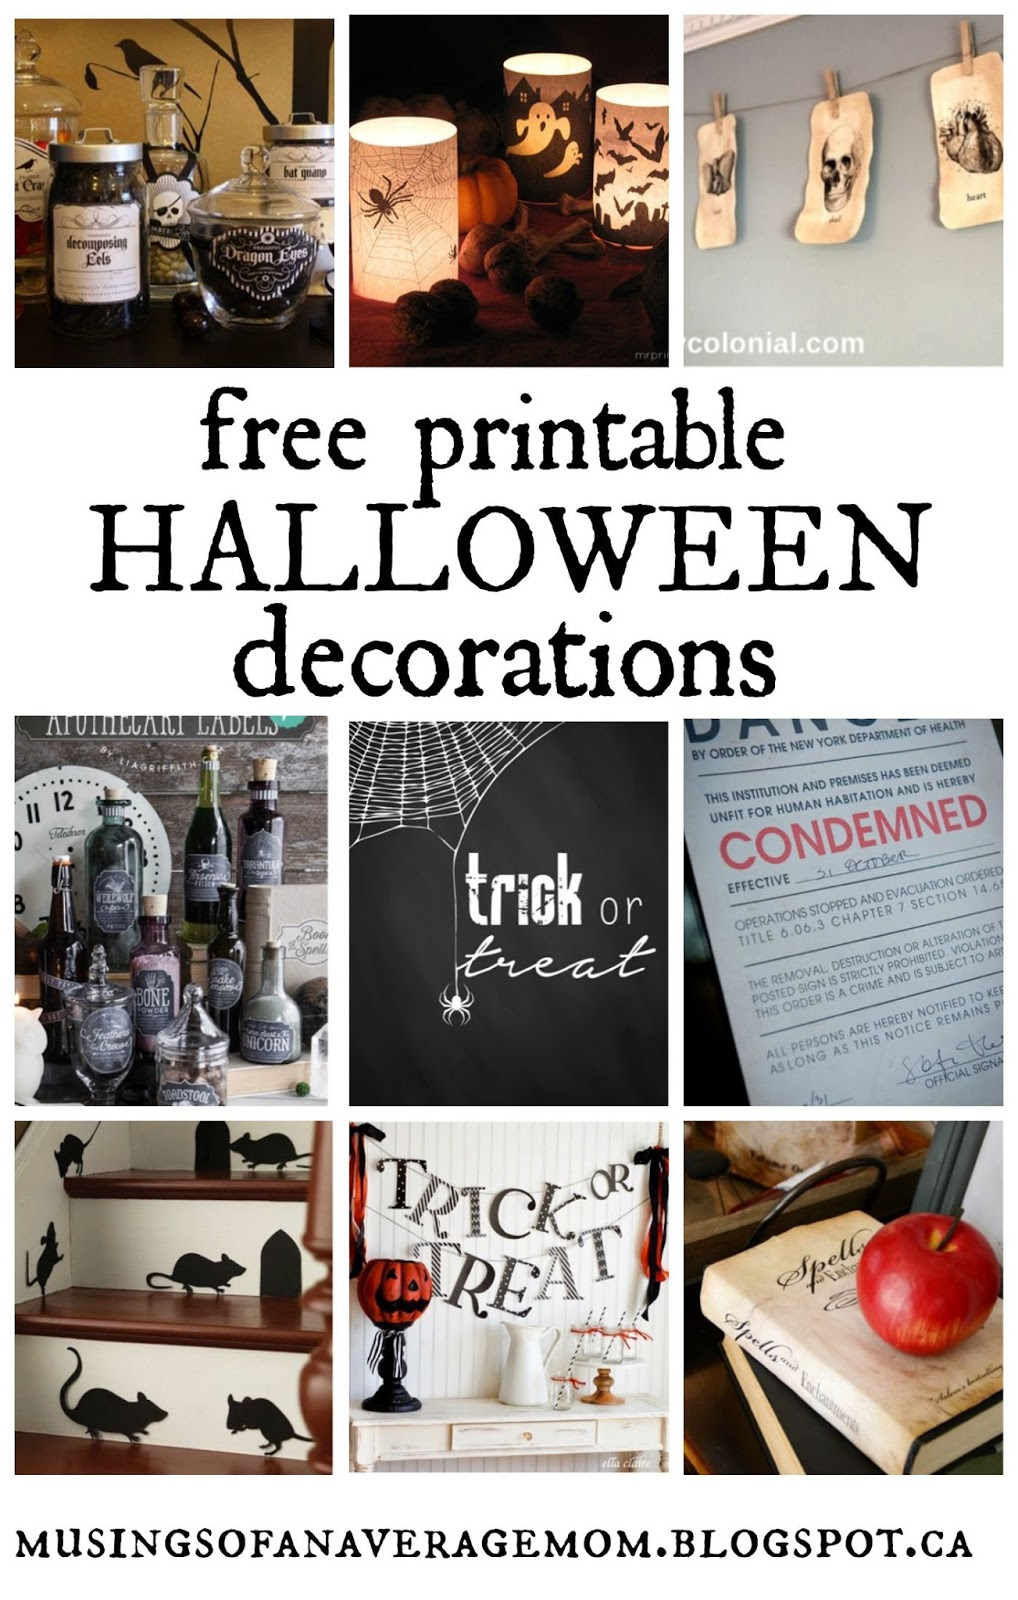 This is a picture of Crafty Free Printable Halloween Decorations